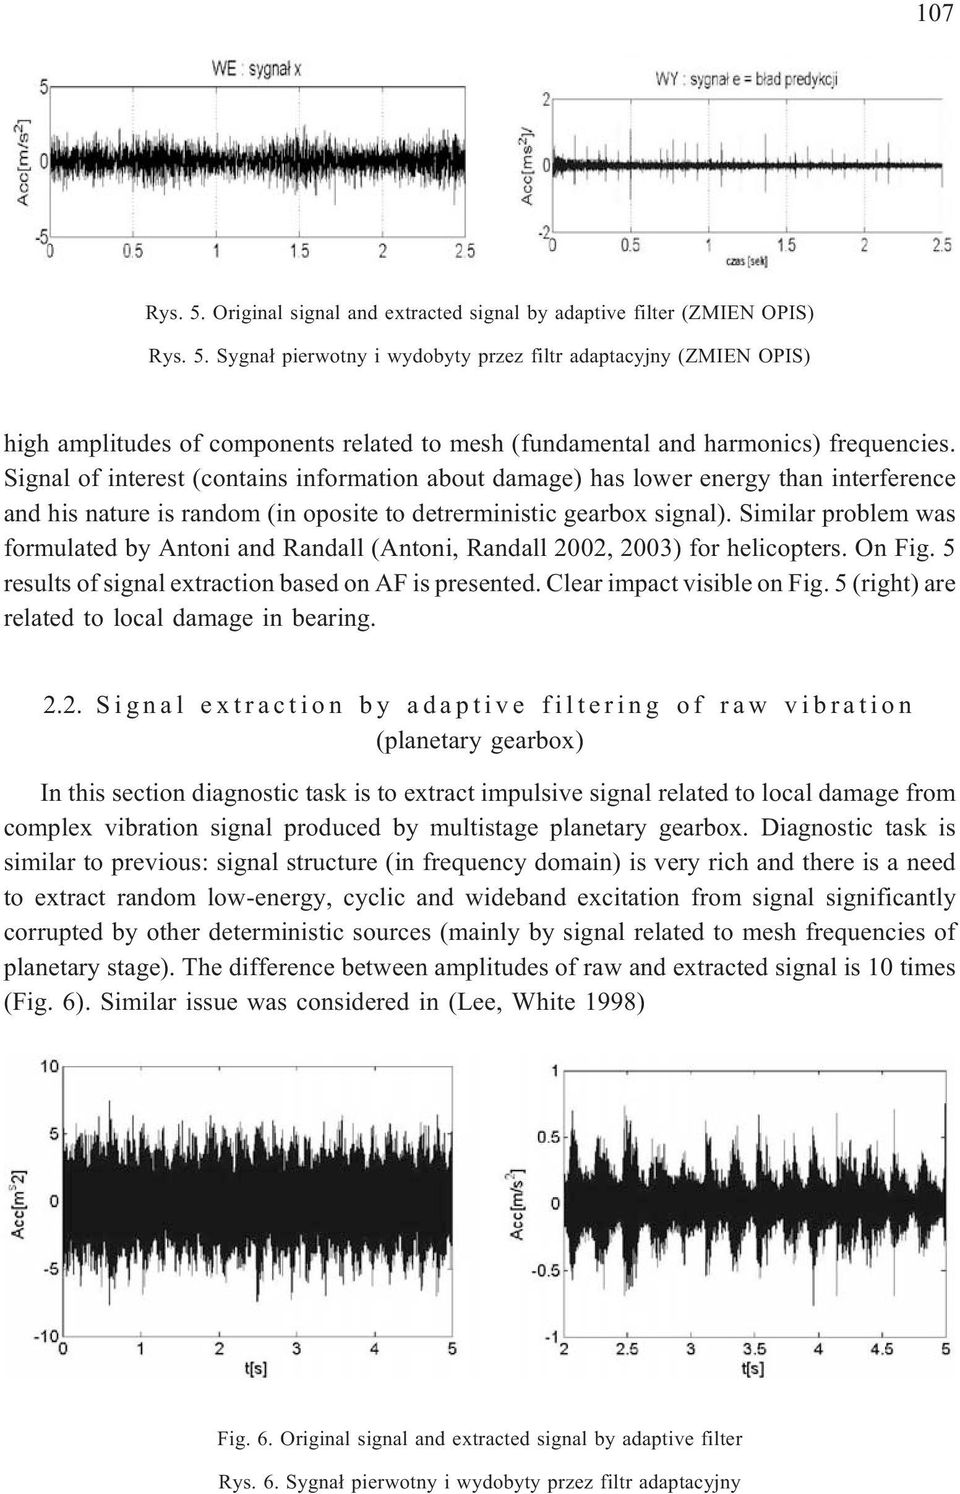 Similar problem was formulated by Antoni and Randall (Antoni, Randall 2002, 2003) for helicopters. On Fig. 5 results of signal extraction based on AF is presented. Clear impact visible on Fig.